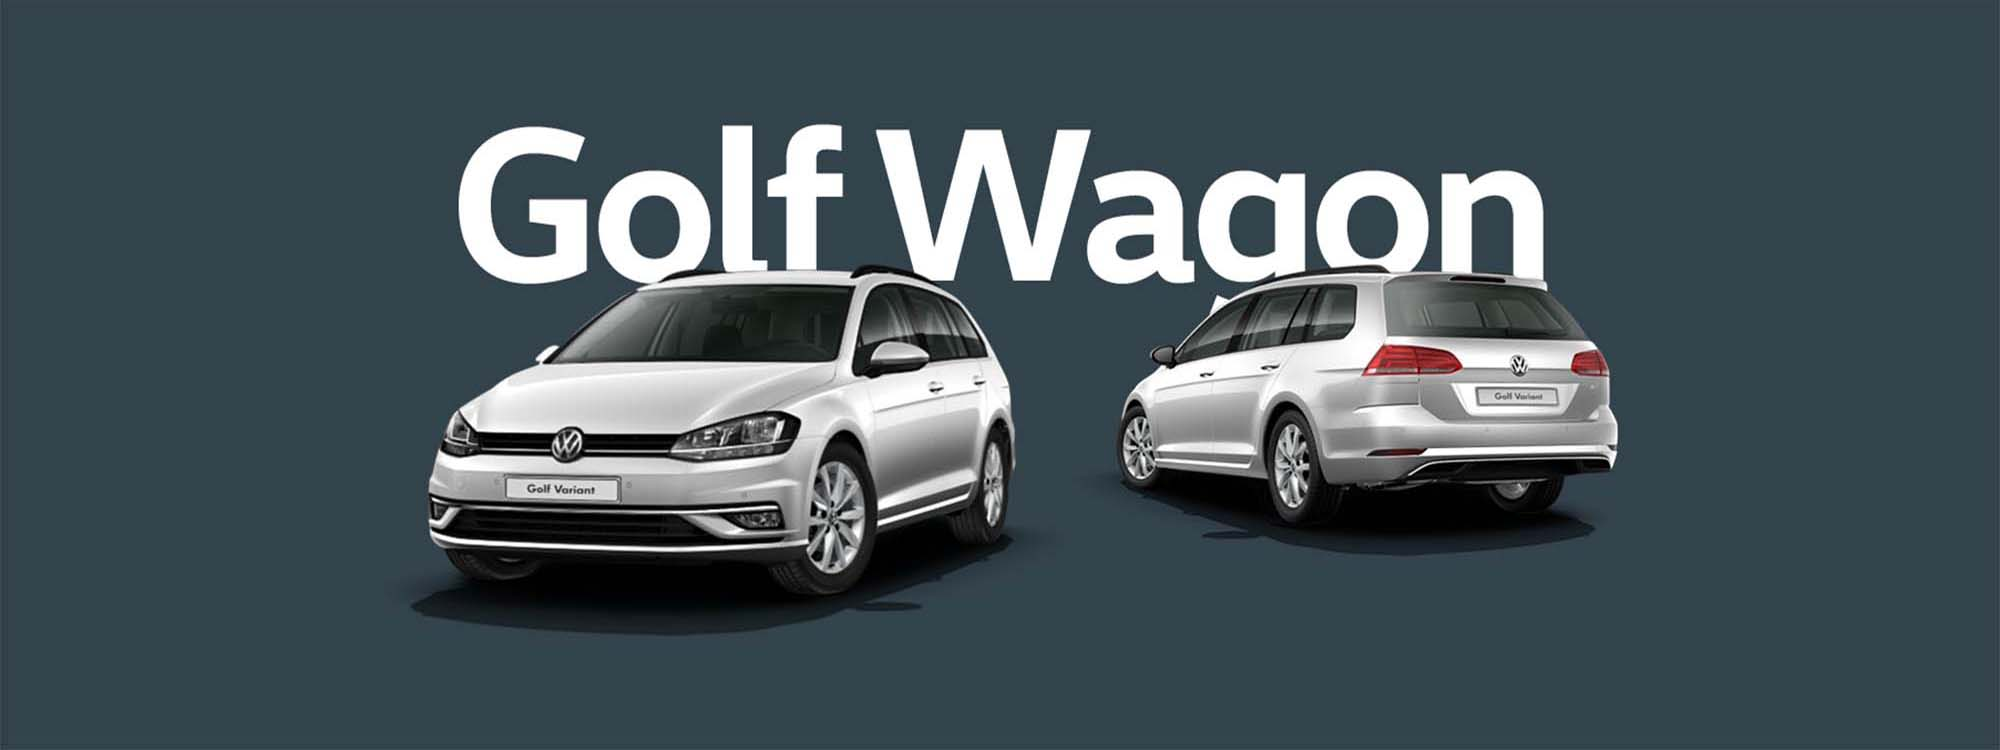 Golf Wagon